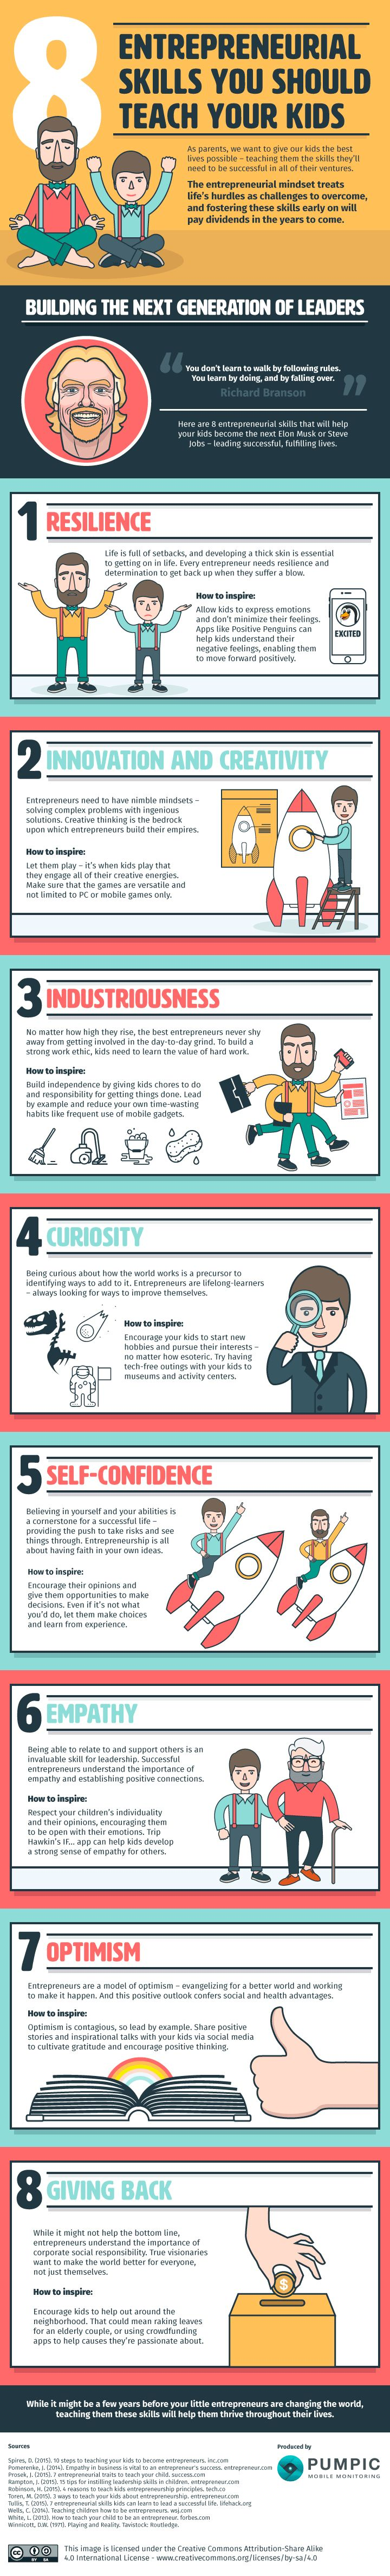 8 Entrepreneurial Skills That Your Children Should Master -- Here are some key entrepreneurial skills your children should learn young and master by the time they enter the workforce.